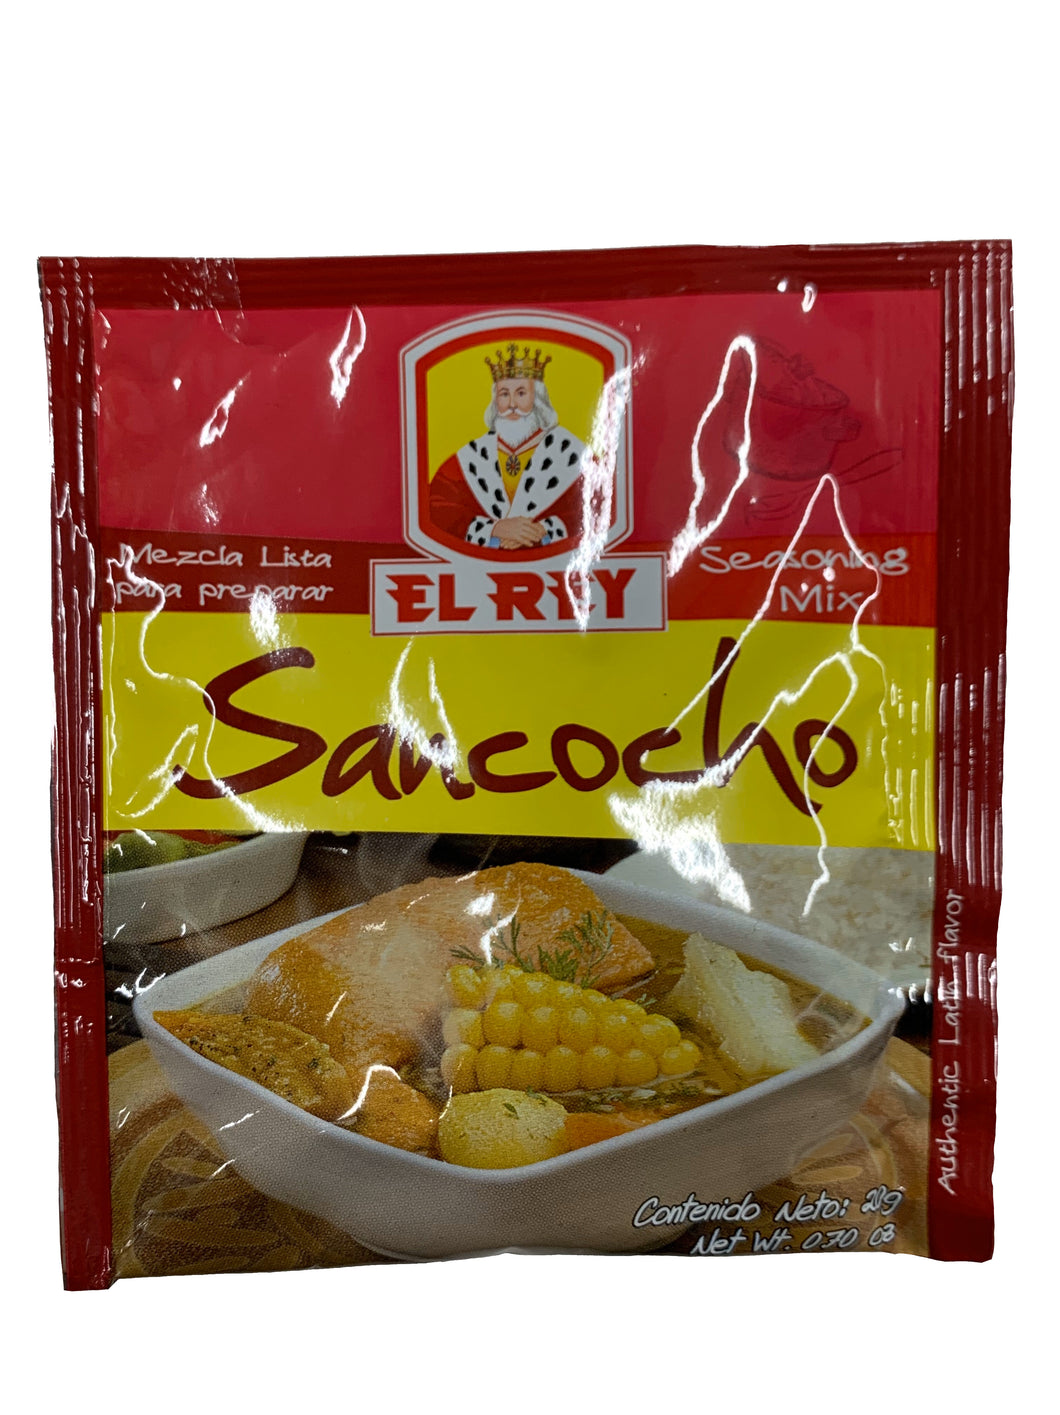 El Rey Sancocho Seasoning 20g